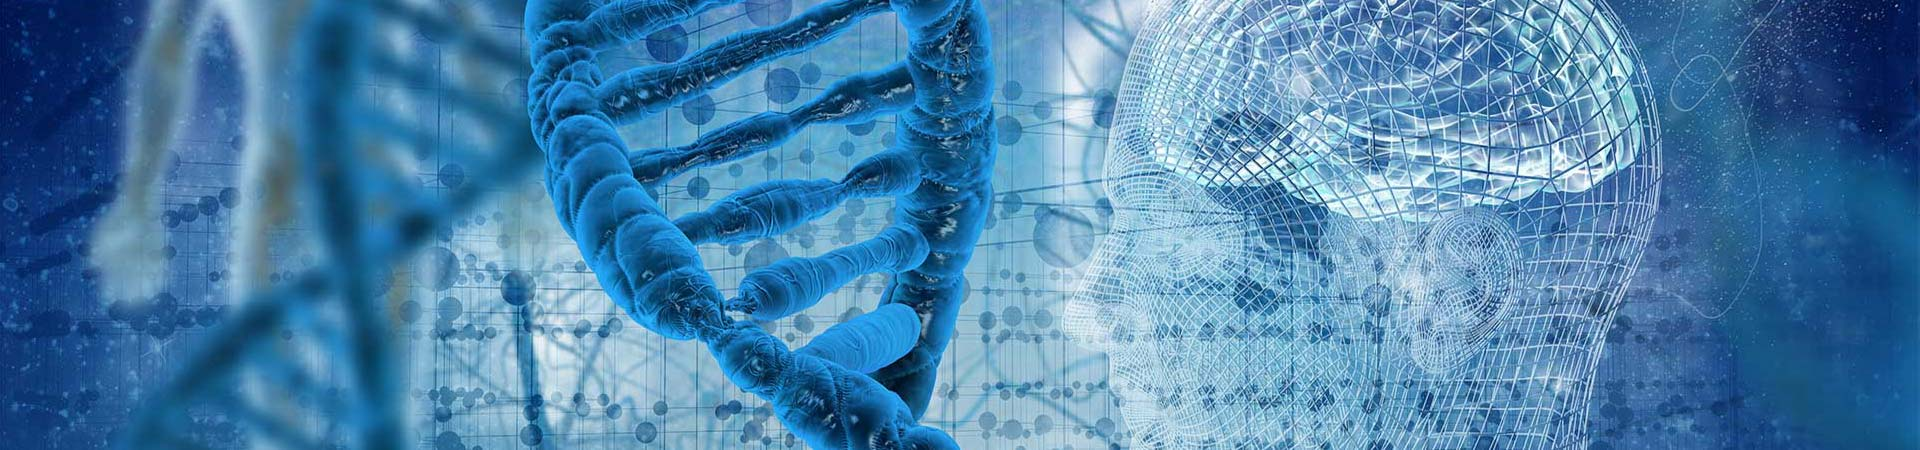 New Horizon 2020 Project: B-SMART Develops RNA-based Therapy for Neurodegenerative Diseases